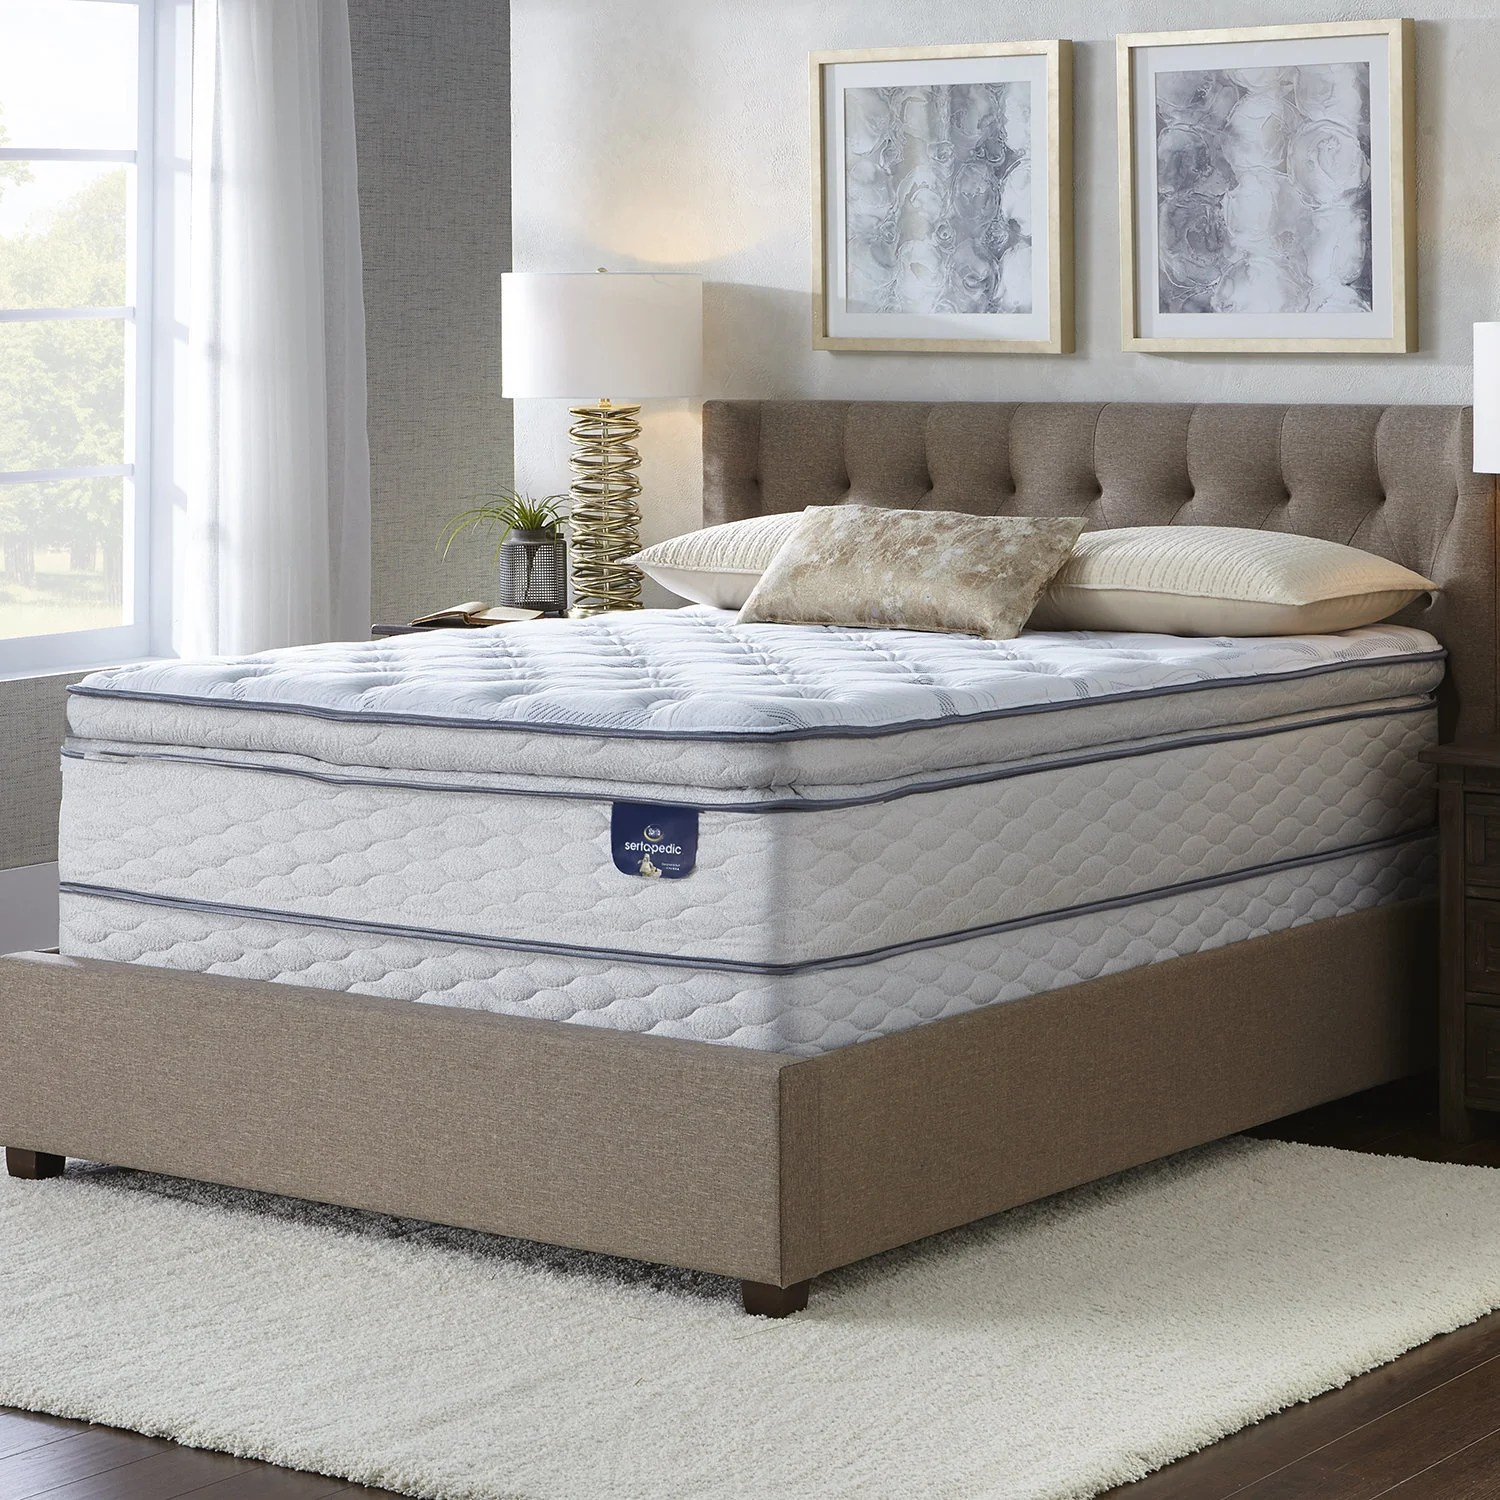 Small Super King Mattress Serta Westview Super Pillow Top Mattress Set